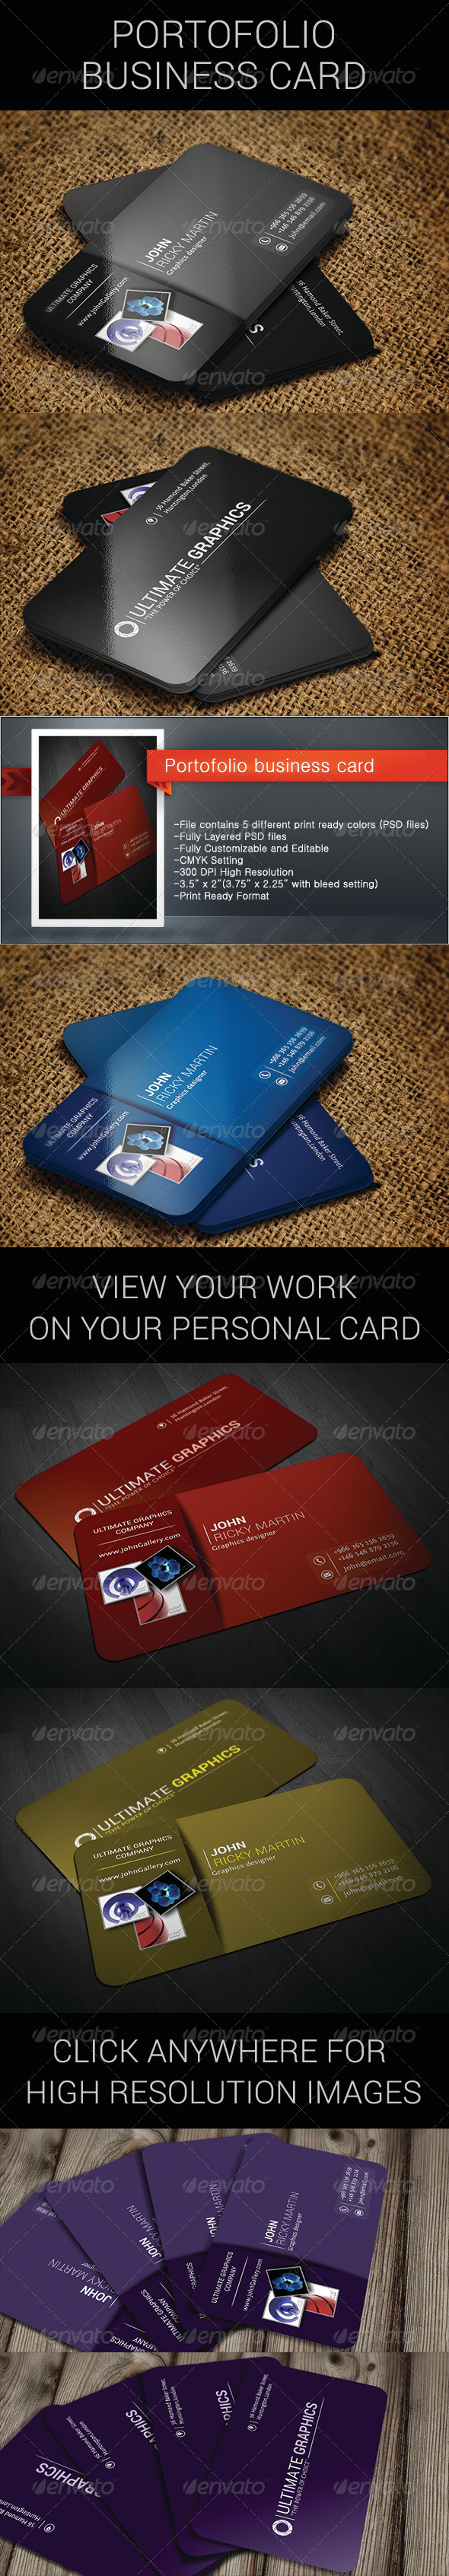 GraphicRiver Portofolio business card 5232072